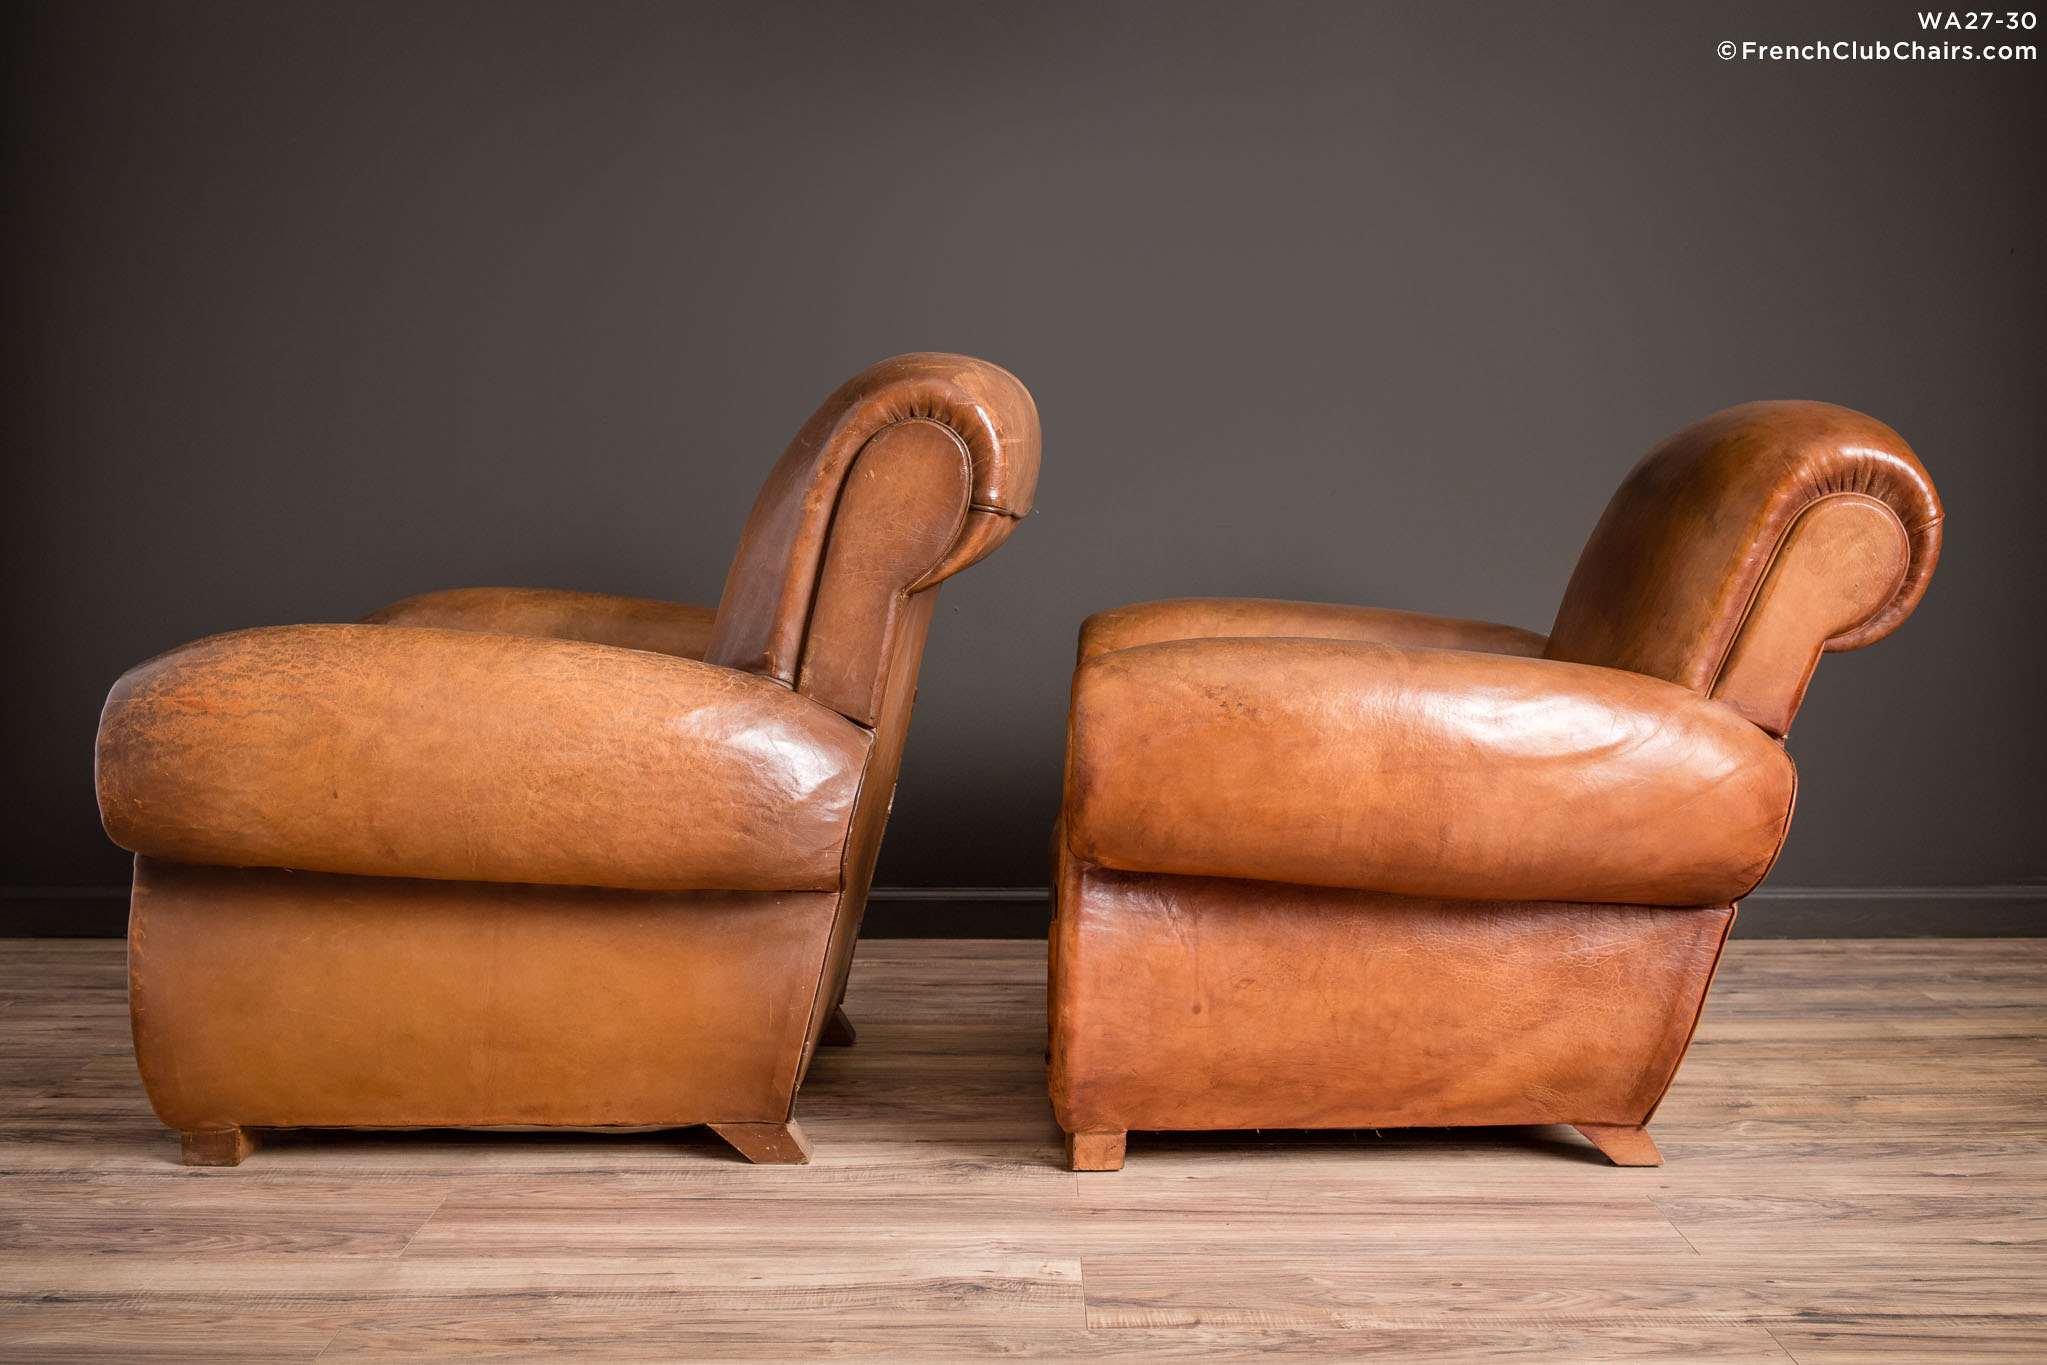 WA_27-30_Giant_Flare_Rollback_Pair_R_4LT-v01-williams-antiks-leather-french-club-chair-wa_fcccom